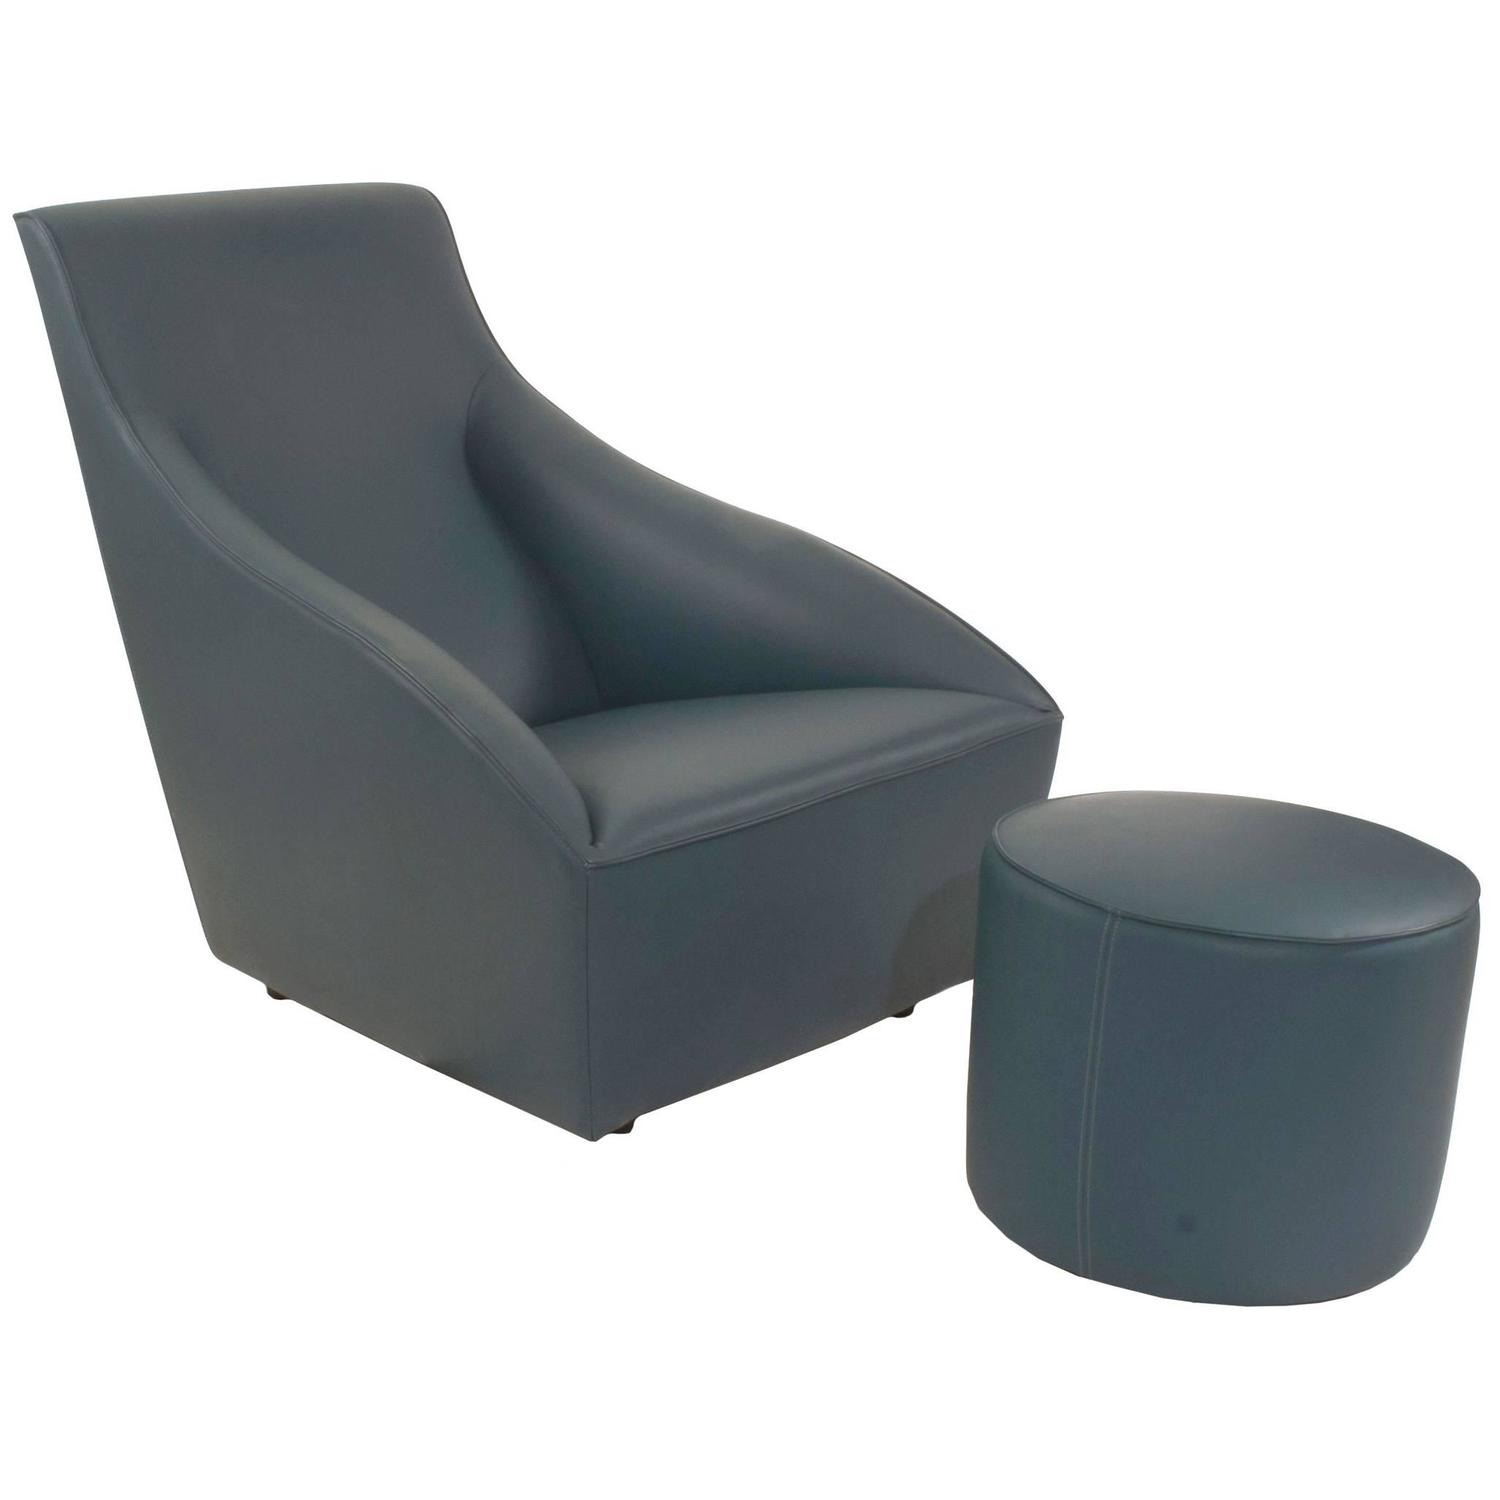 italian modern maxence small armchair and pouf ottoman by dom  - leather doda lounge armchair and pouf ottoman by ferruccio laviani formolteni